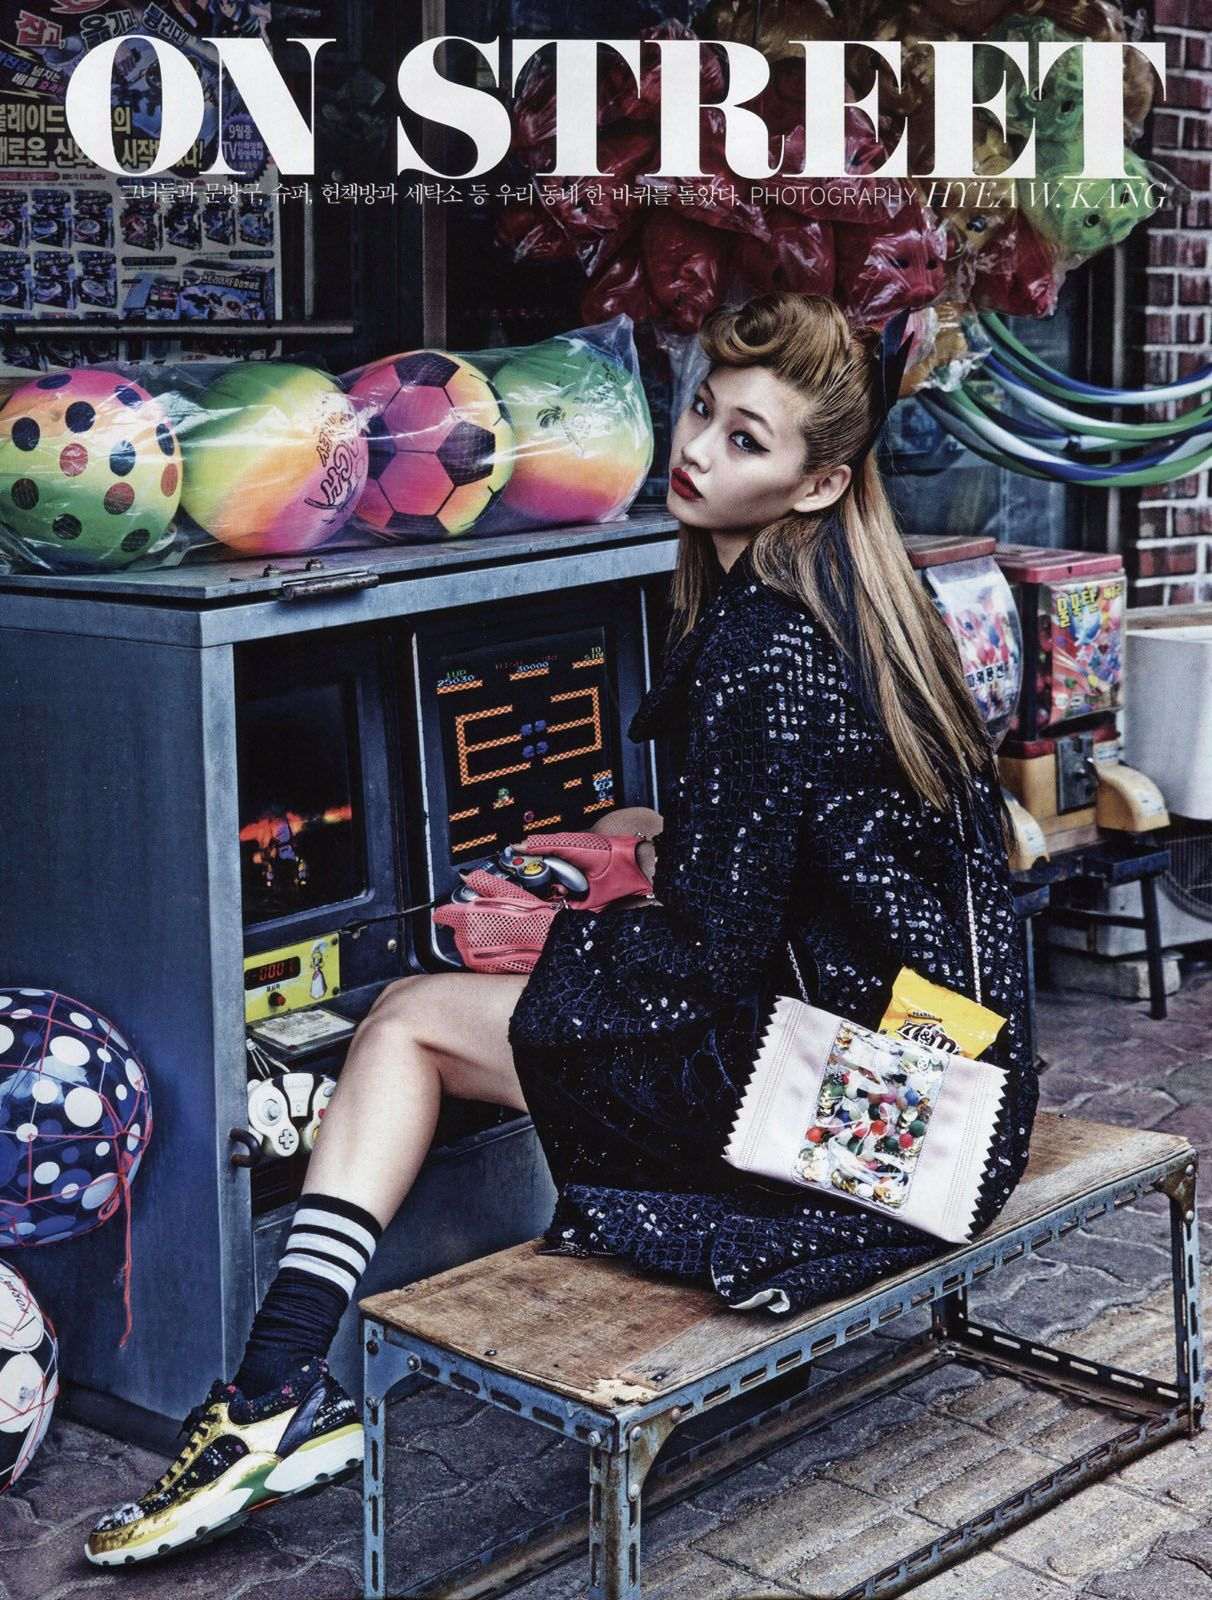 Vogue Korea August 2014 'Girls on Street' by Hyea Won Kang - Chanel